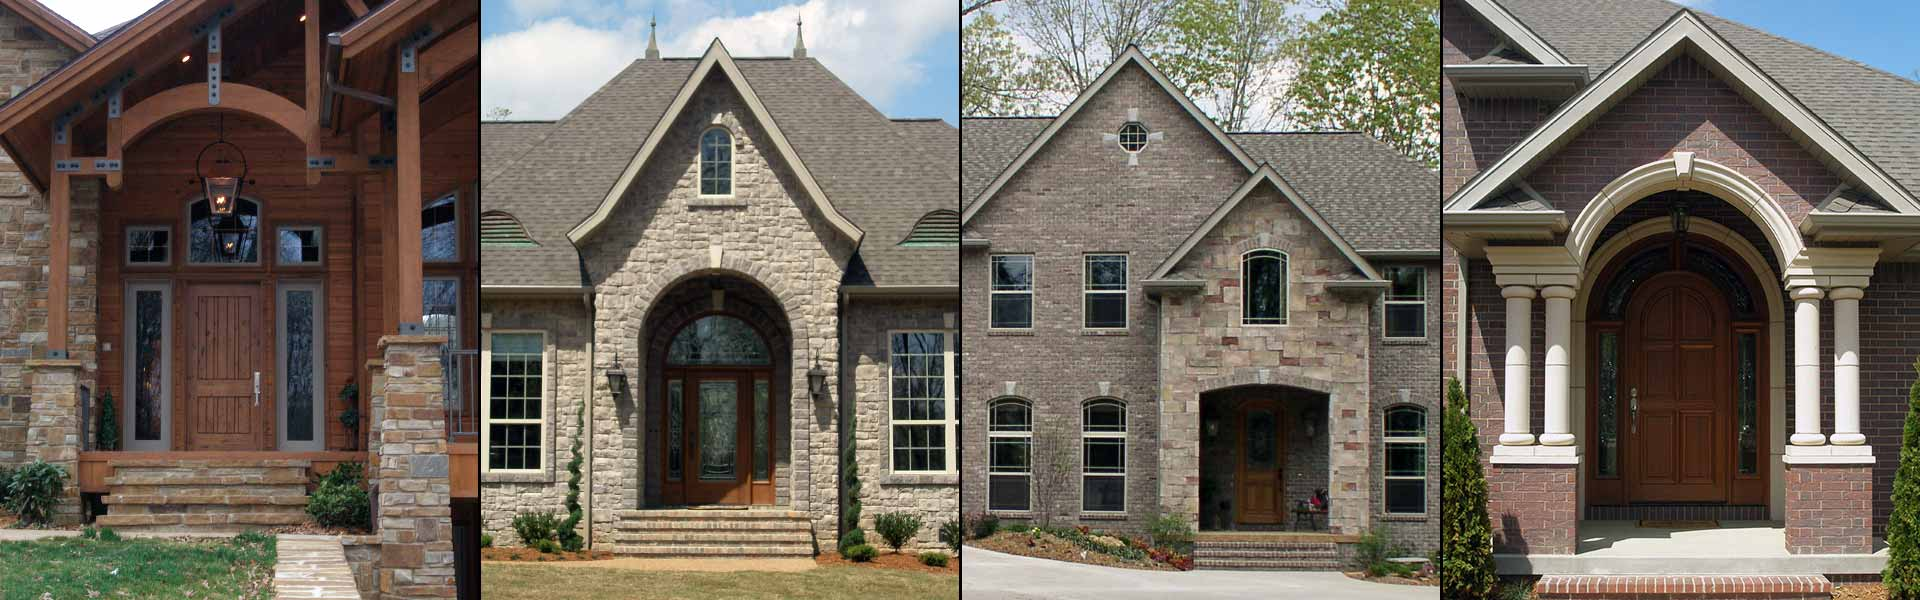 4 Images of Custom Home Entrances built by Bryan Bell Construction, Inc.